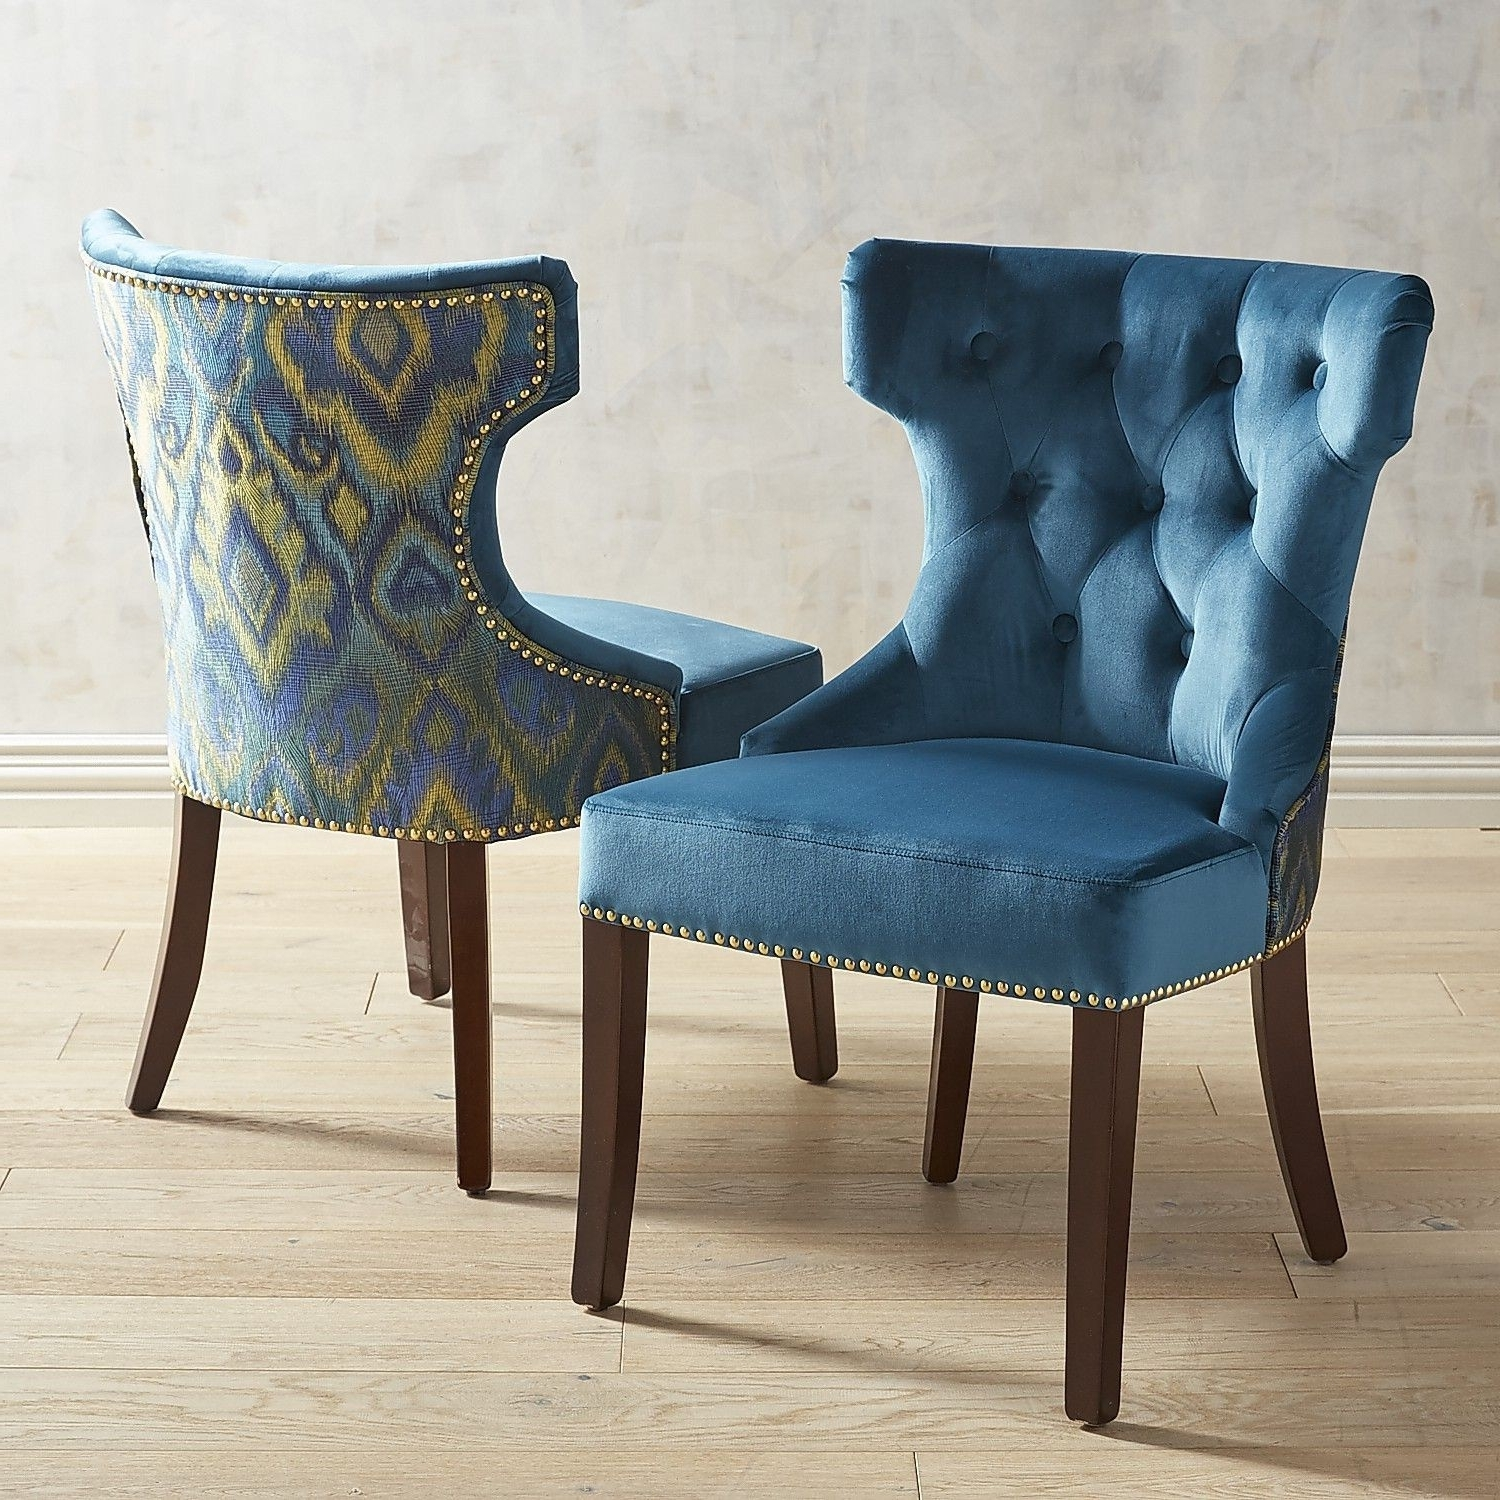 Preferred Ebay Dining Chairs Throughout Laura Ashley Armchair Ebay Inspirational Hourglass Plume Teal Dining (View 7 of 25)